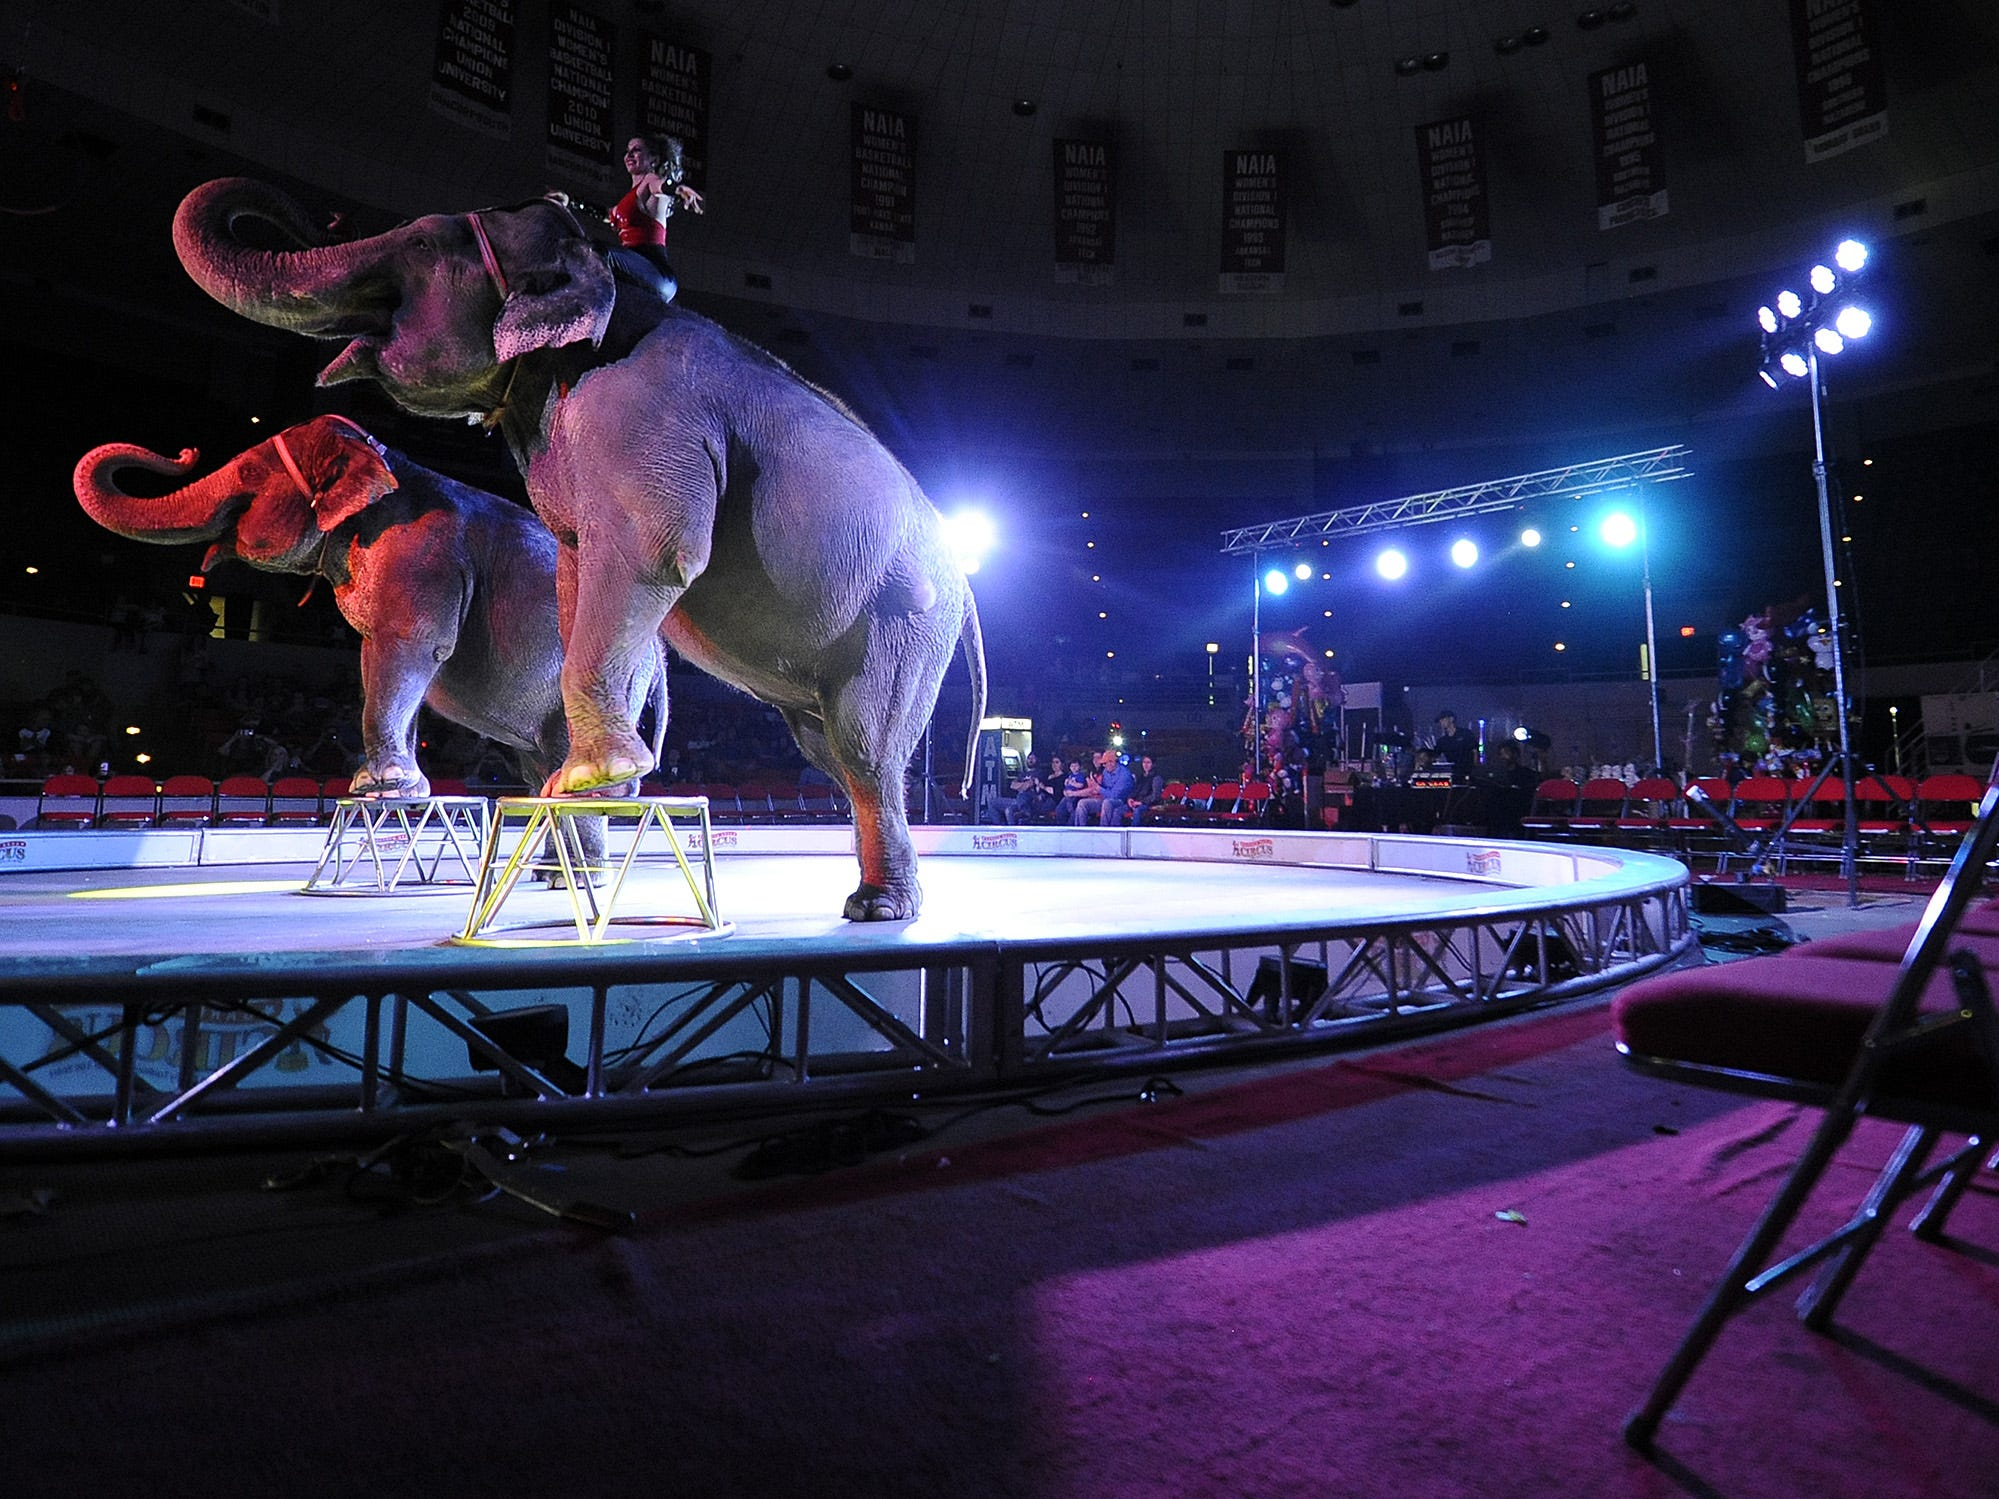 Elephants perform during the Garden Bros Circus at Oman Arena in Jackson, Tennessee, on Wednesday, Feb. 22, 2017.